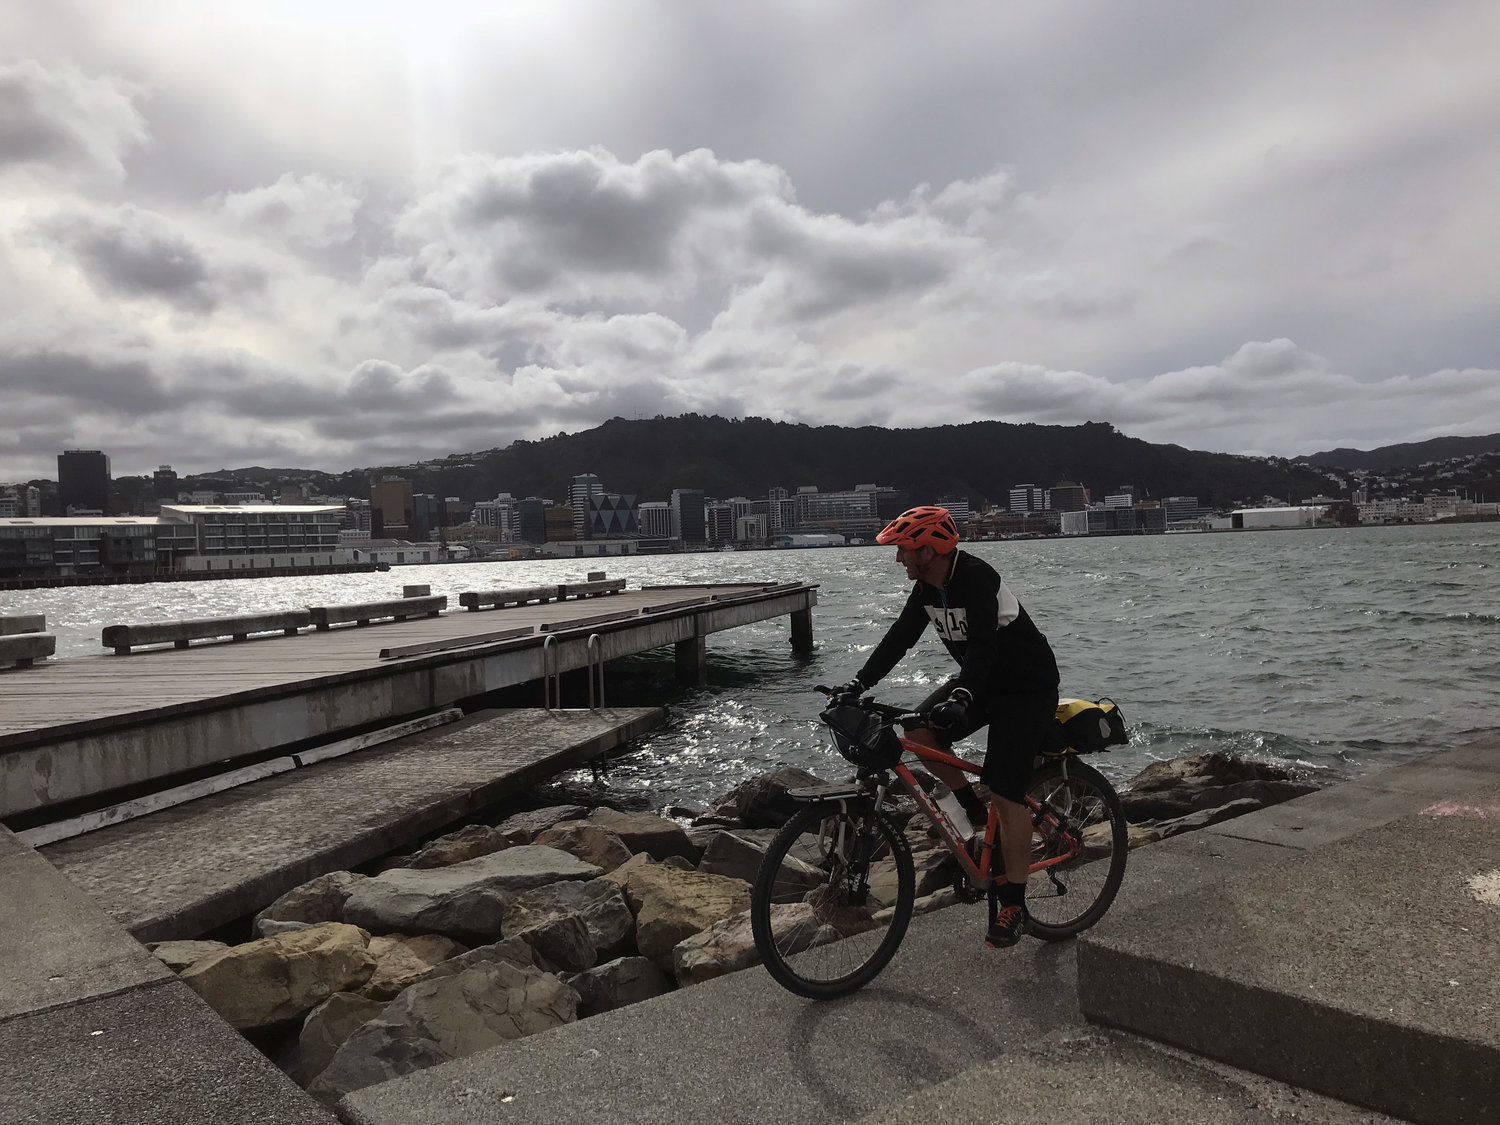 Ralph Johns combined his love of cycling with his love of landscape spending eleven days visiting most of the 25 Isthmus projects documented in a book he co-wrote called Coast, Country, Neighbourhood, City.